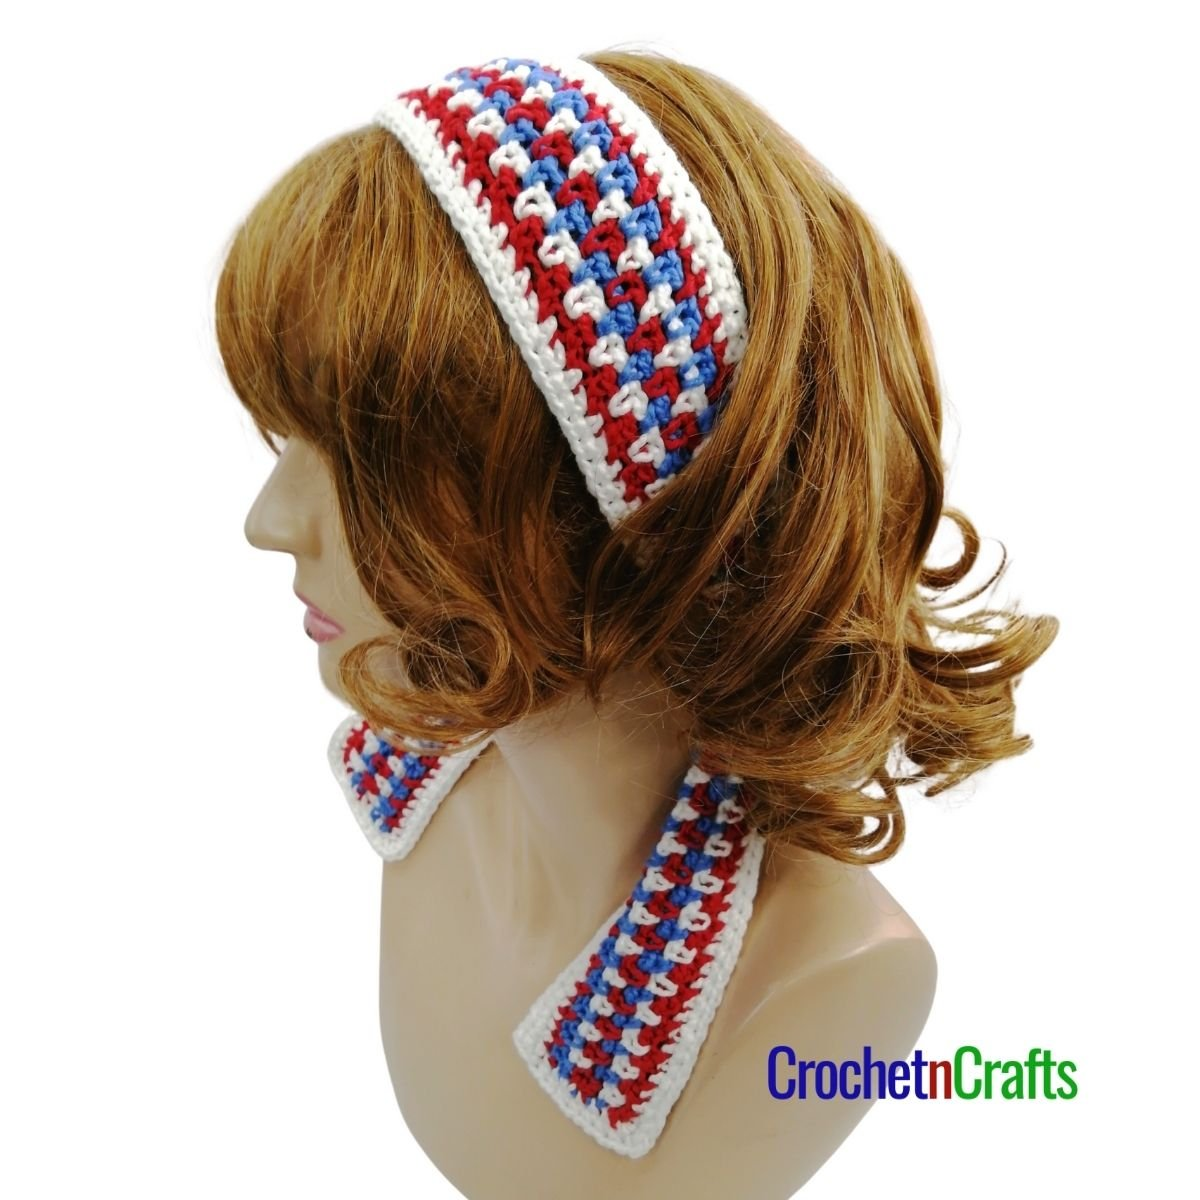 Striped crochet headband pattern shown in red, white and blue colors.